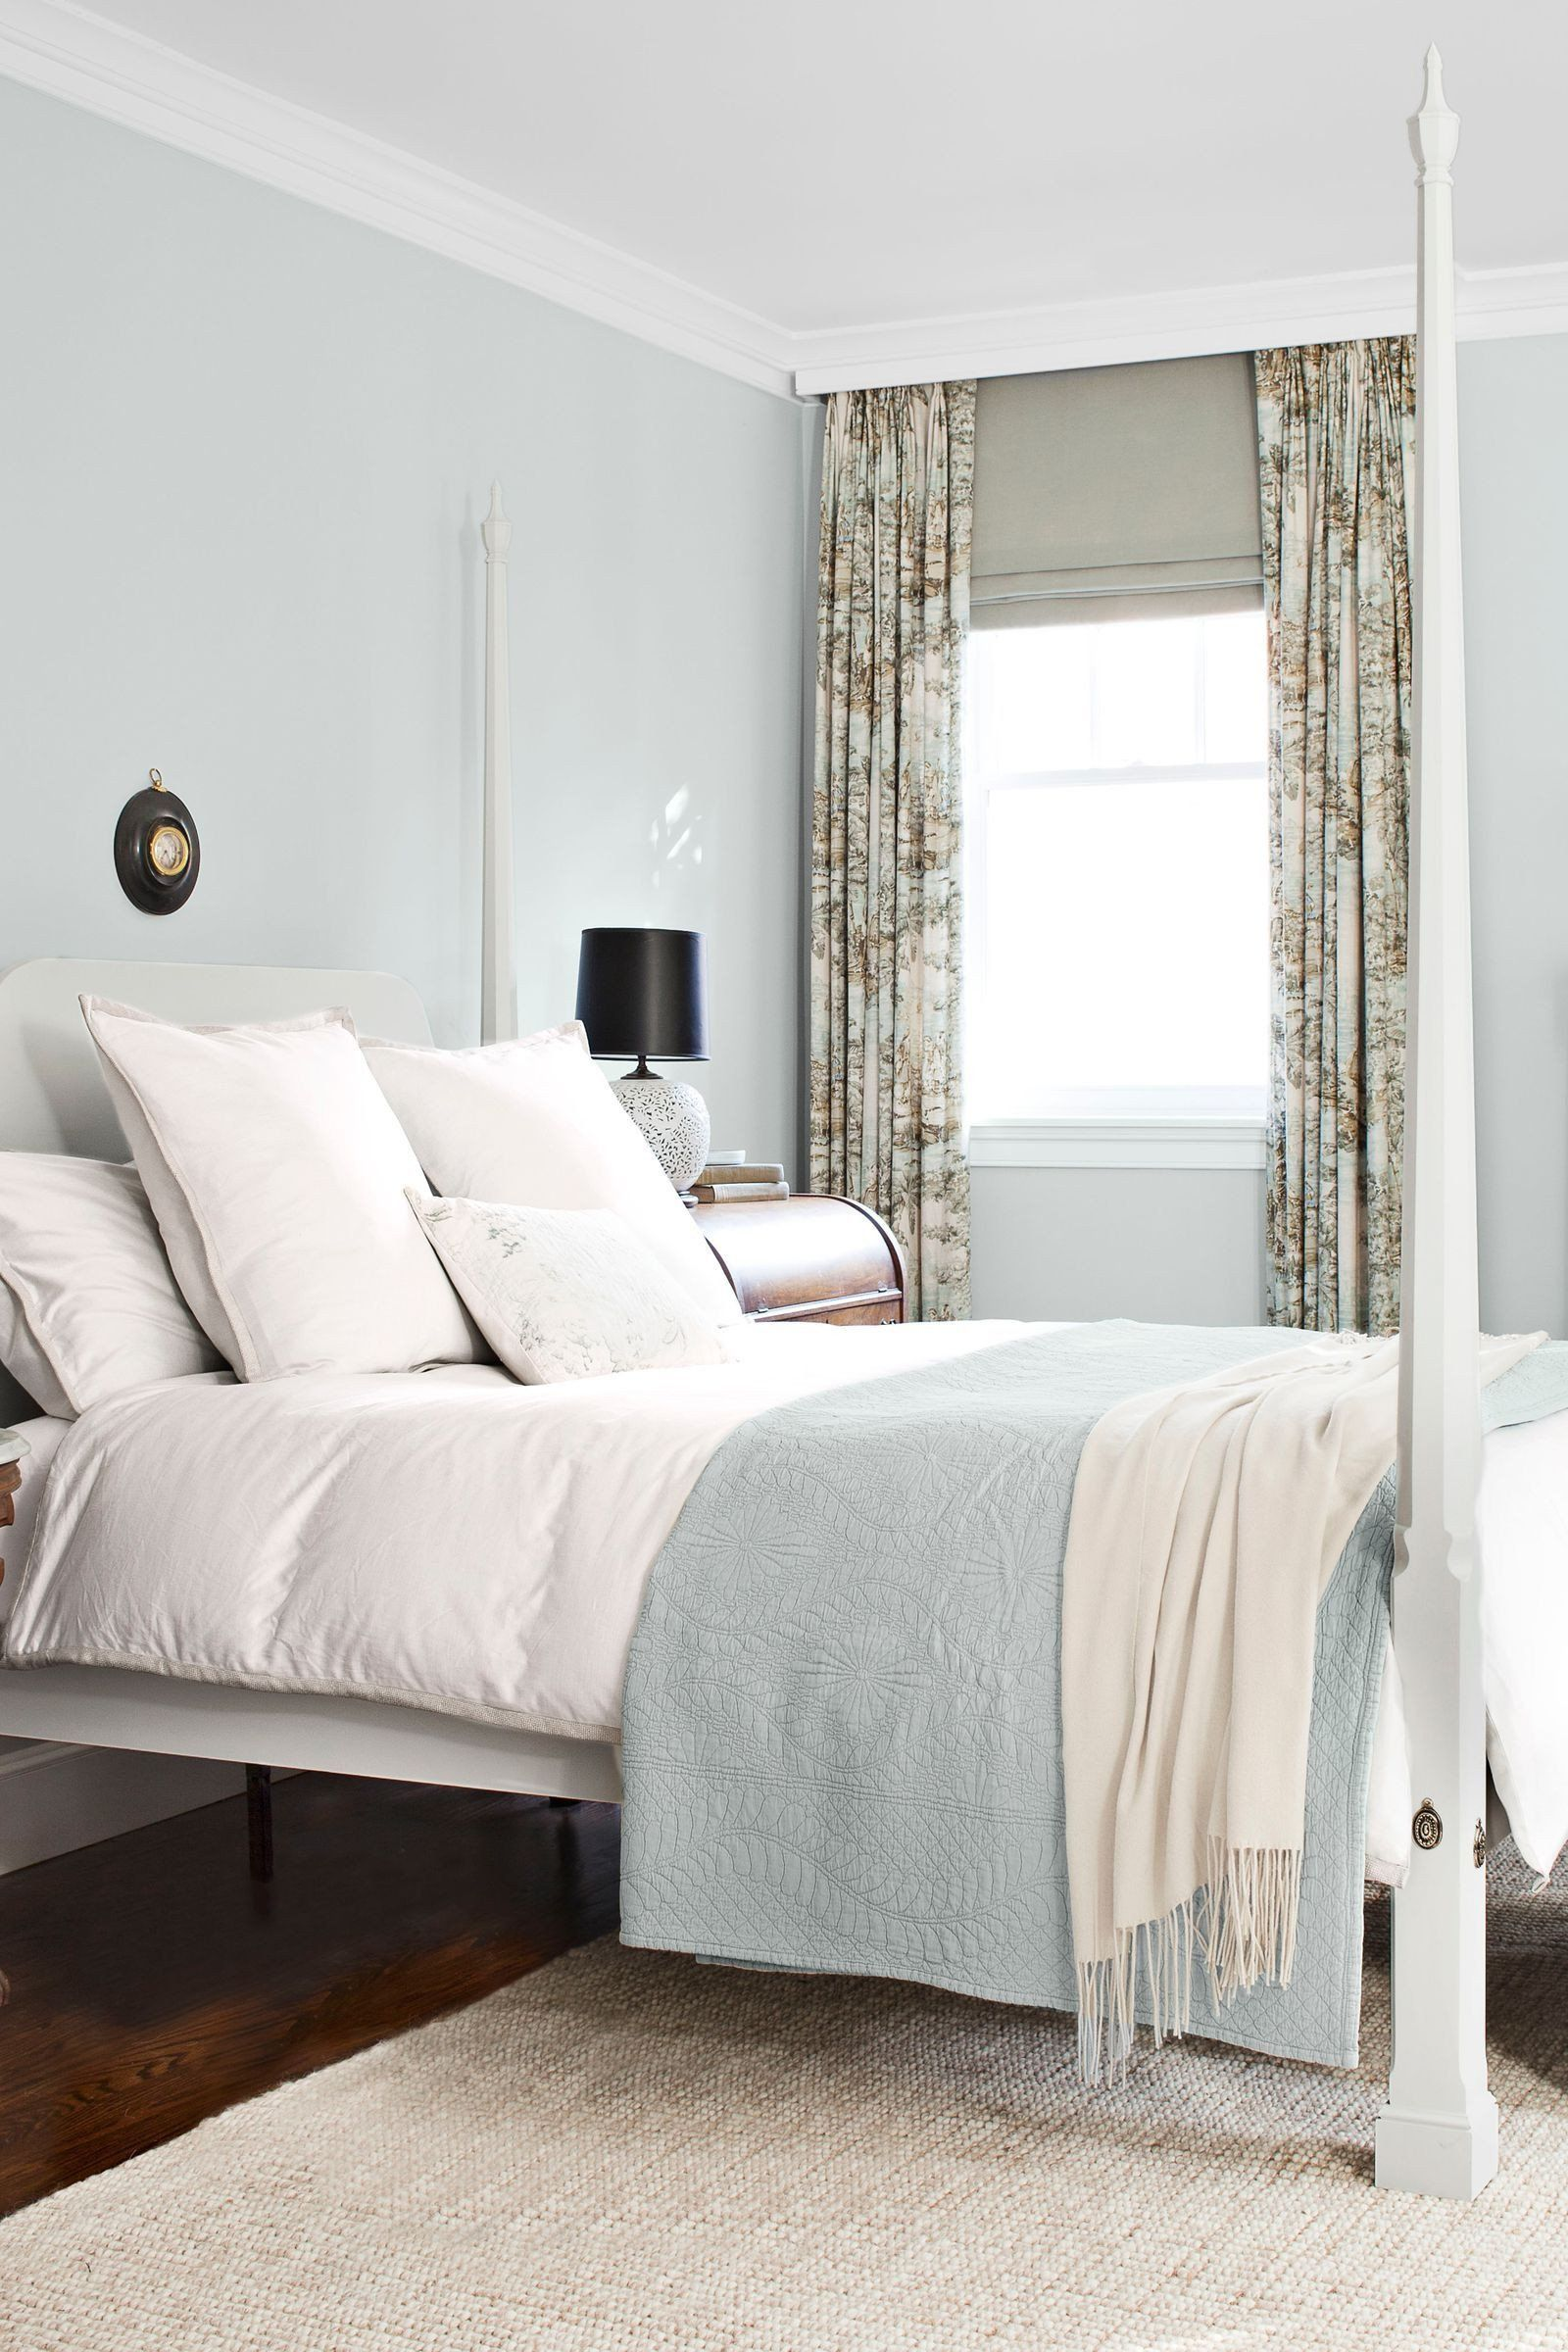 Light Blue Master Bedroom Elegant 25 Reasons Why Blue Is The Best Color For Your Home Blue Master Bedroom Gray Master Bedroom Master Bedroom Color Schemes